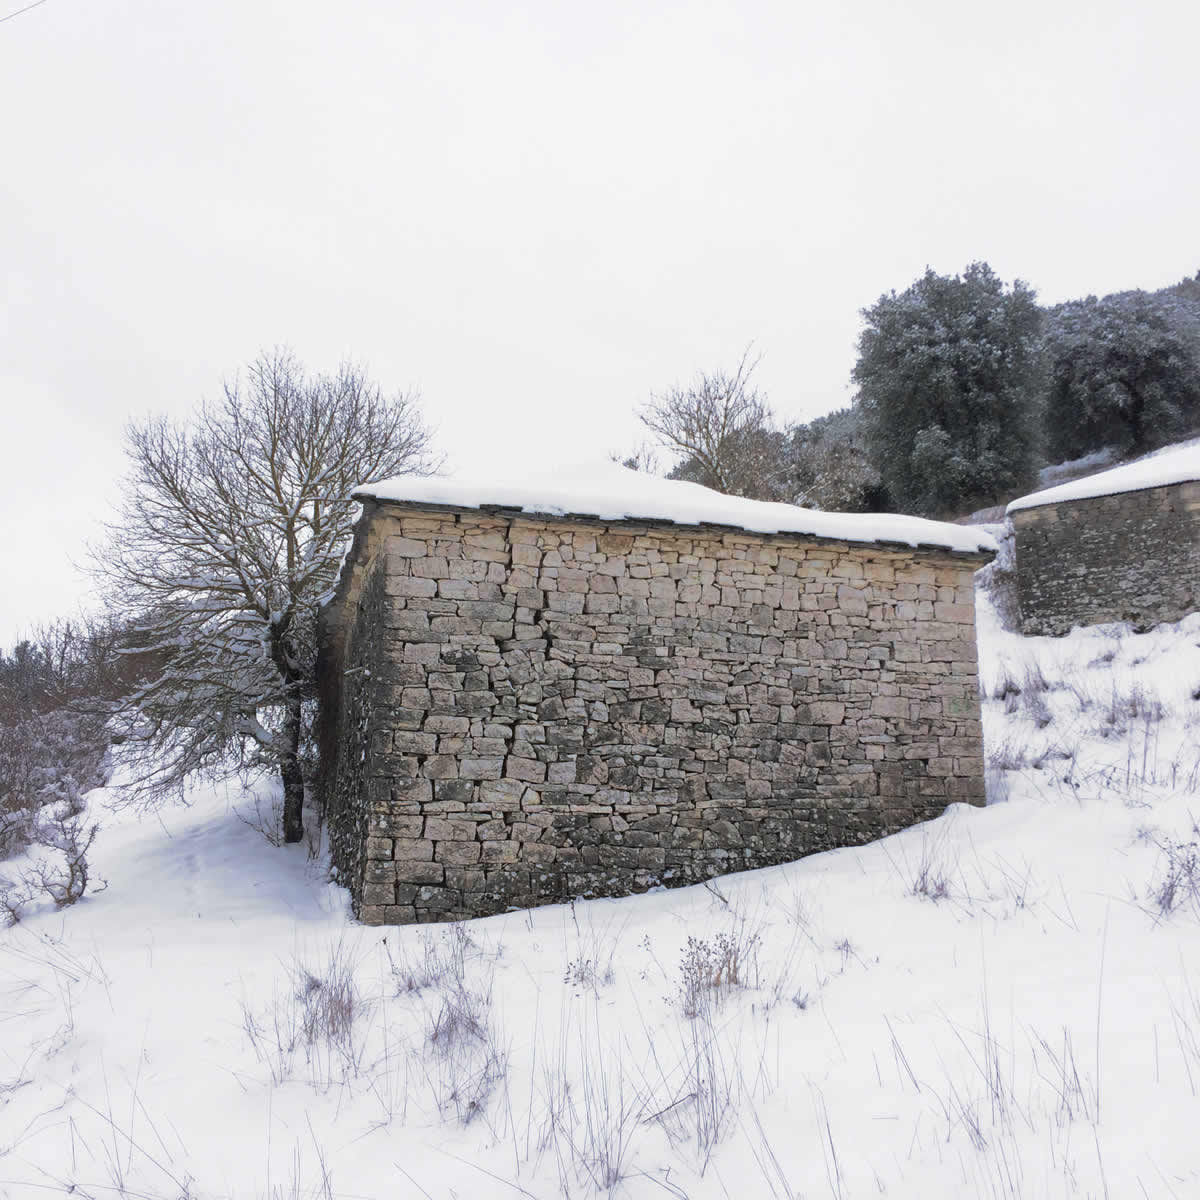 An old snow-covered stone building, Kato Pedina village, Zagori